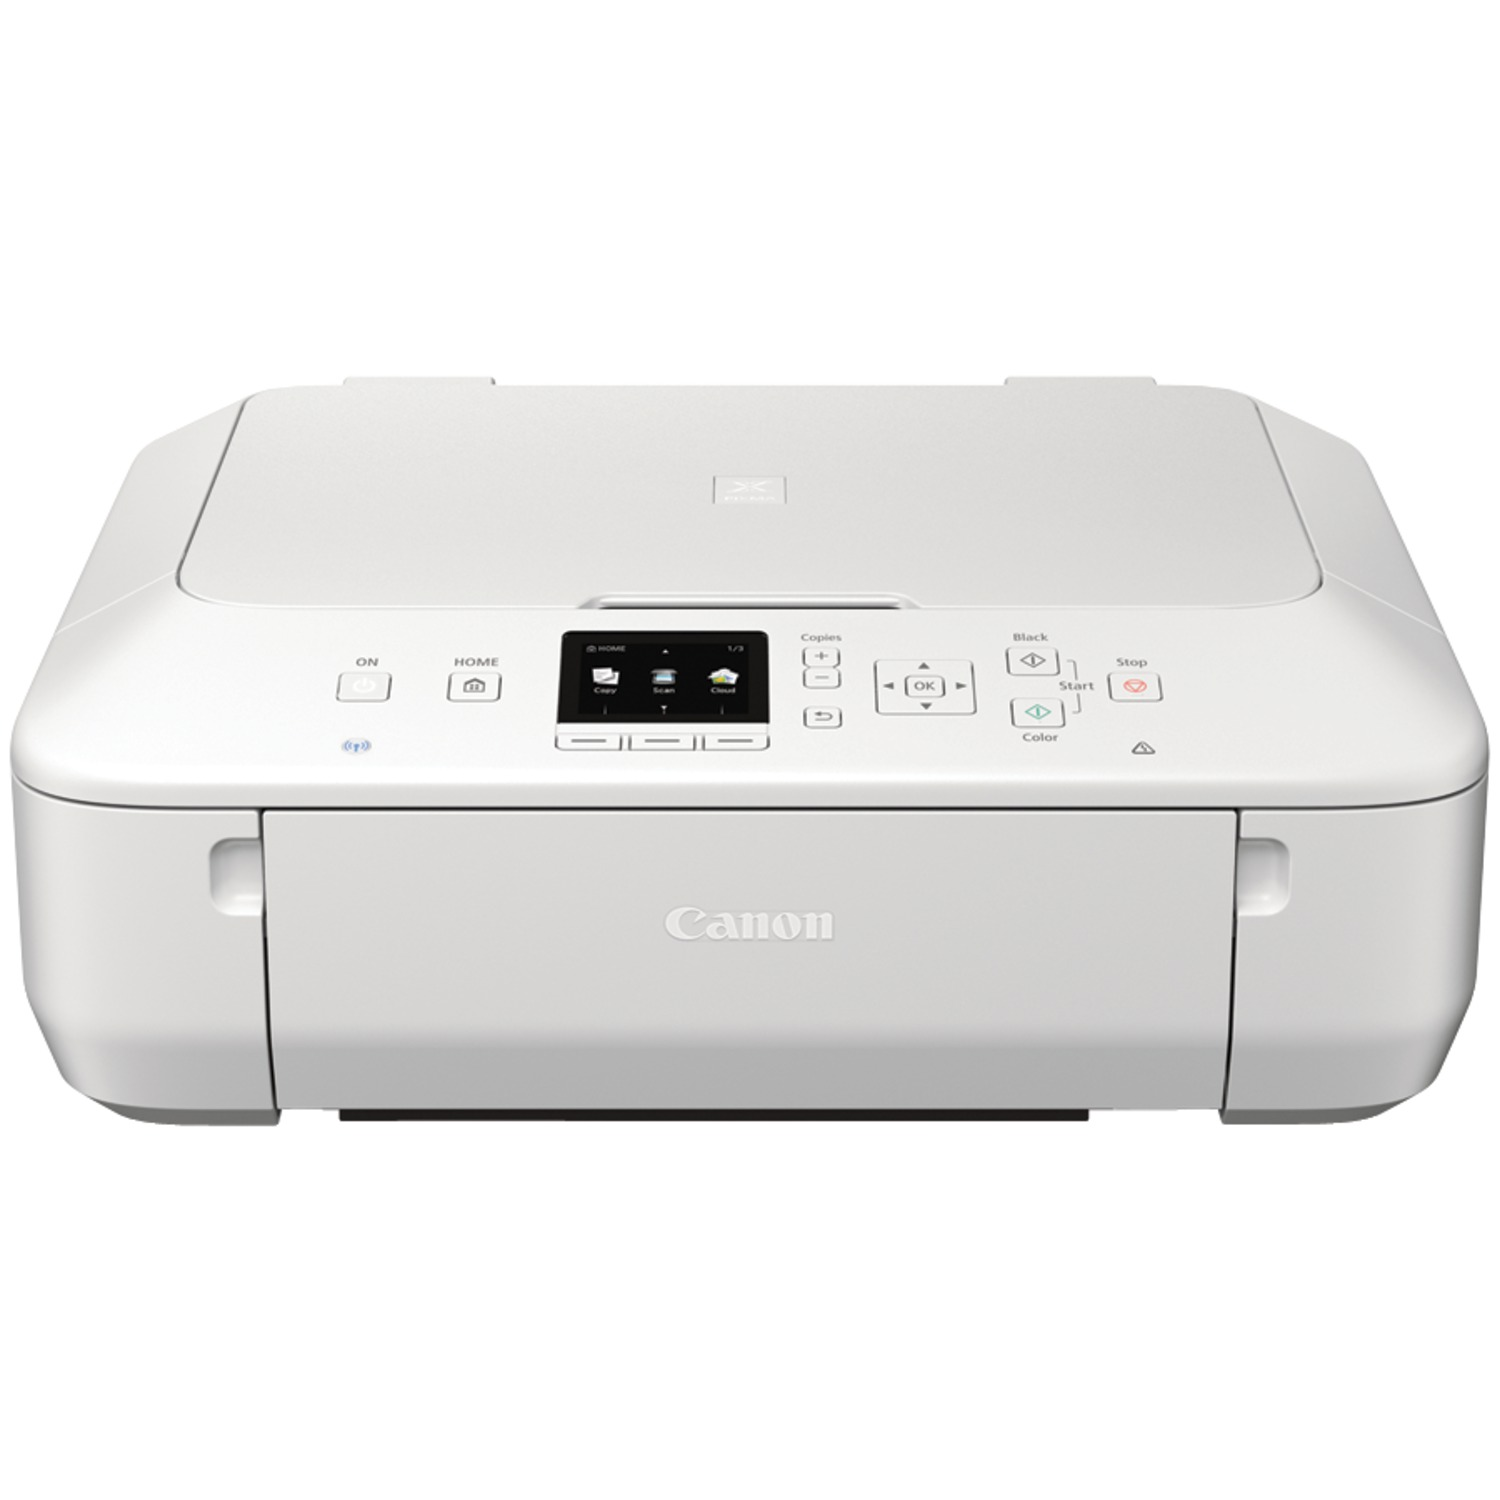 PIXMA MG5520 Black Wireless Inkjet Photo All-in-One Printer